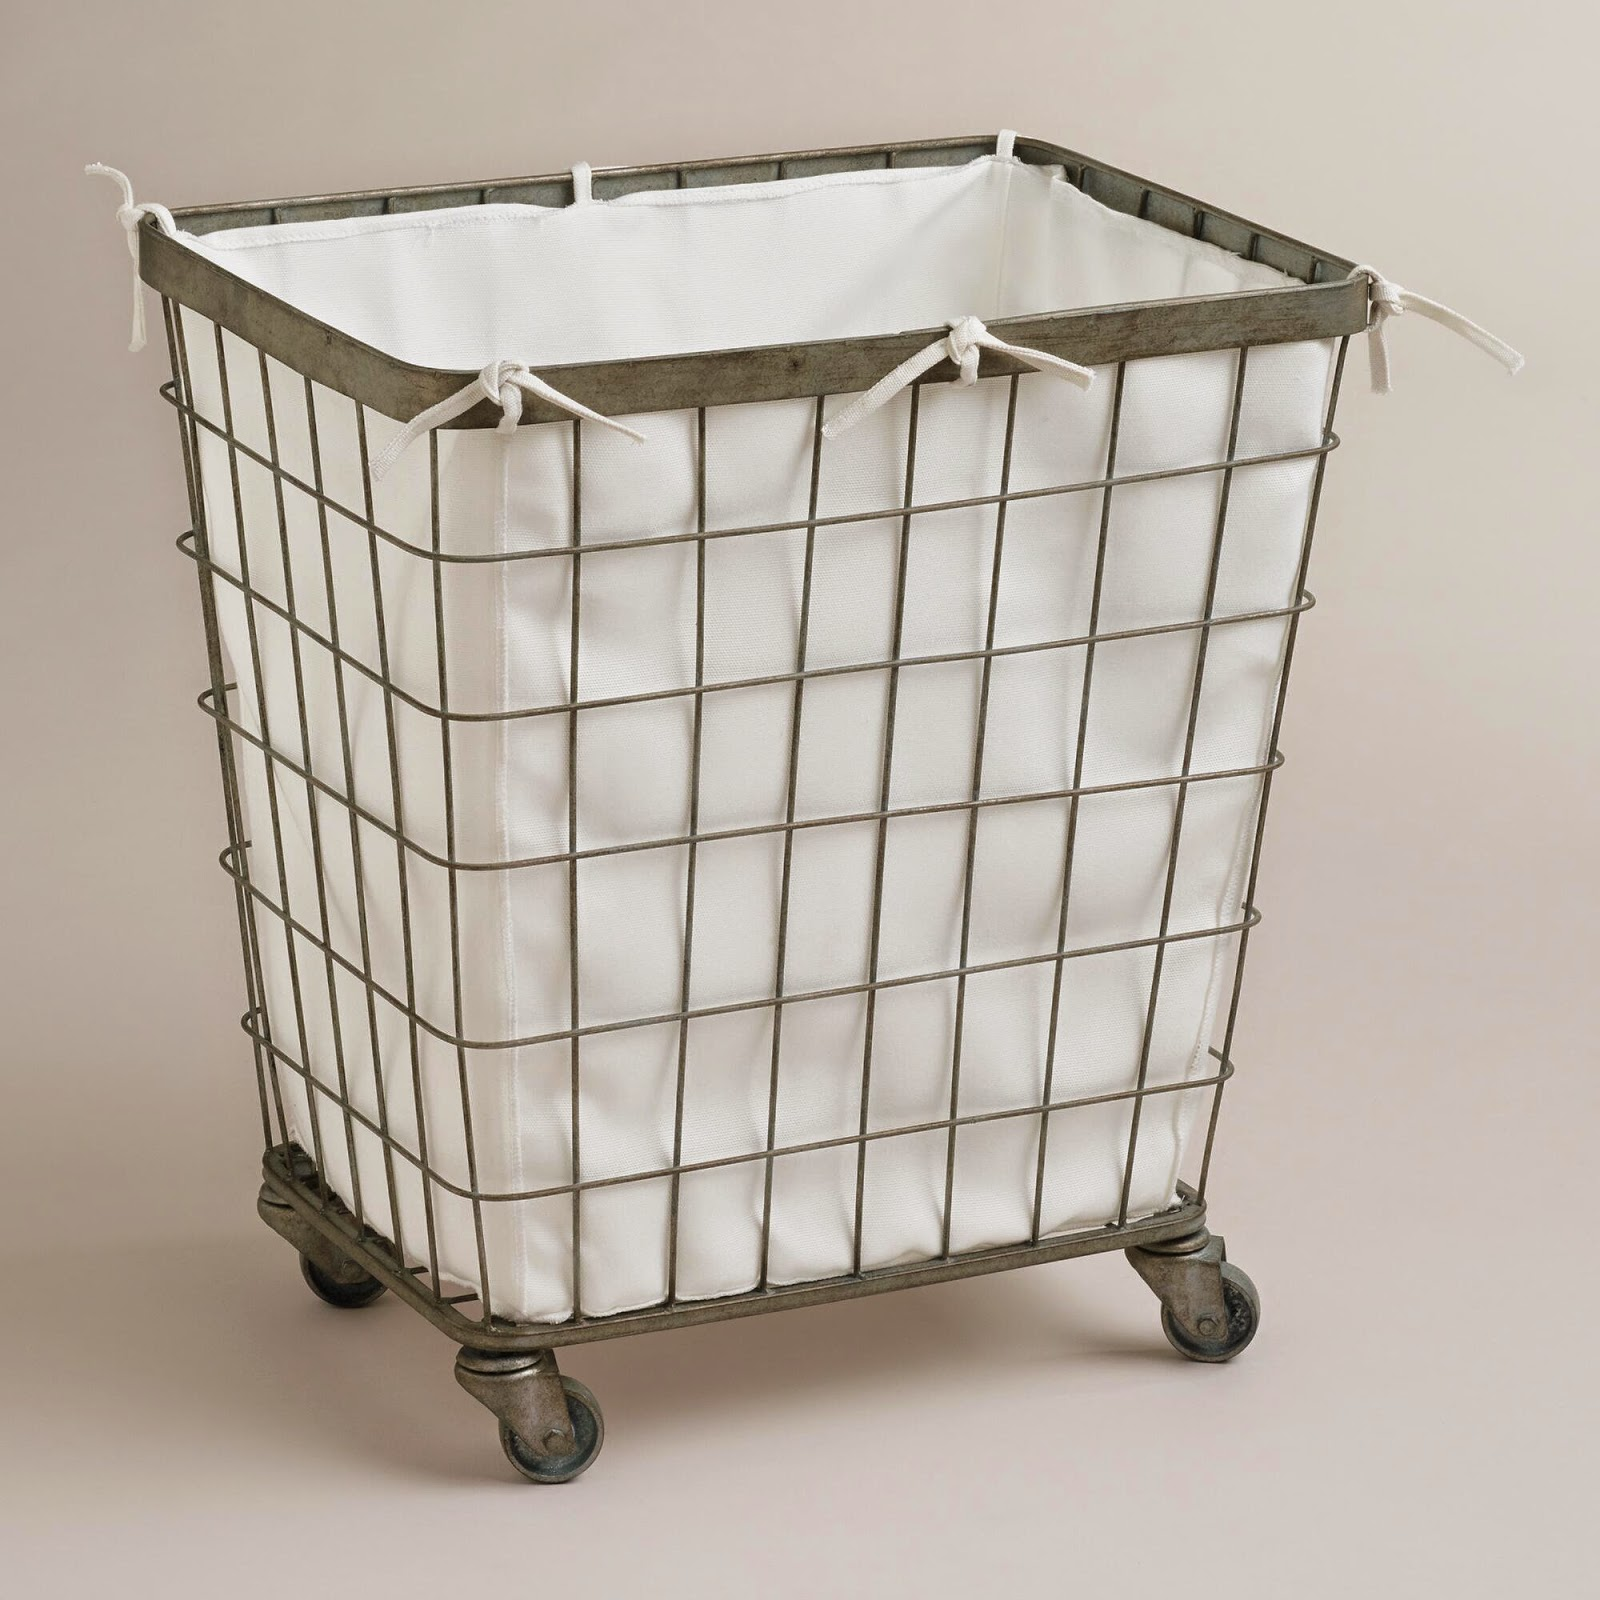 5 This Is The Elevated Laundry Basket Also From Steele Canvas I Really Like Design On One It Has That French Flare To